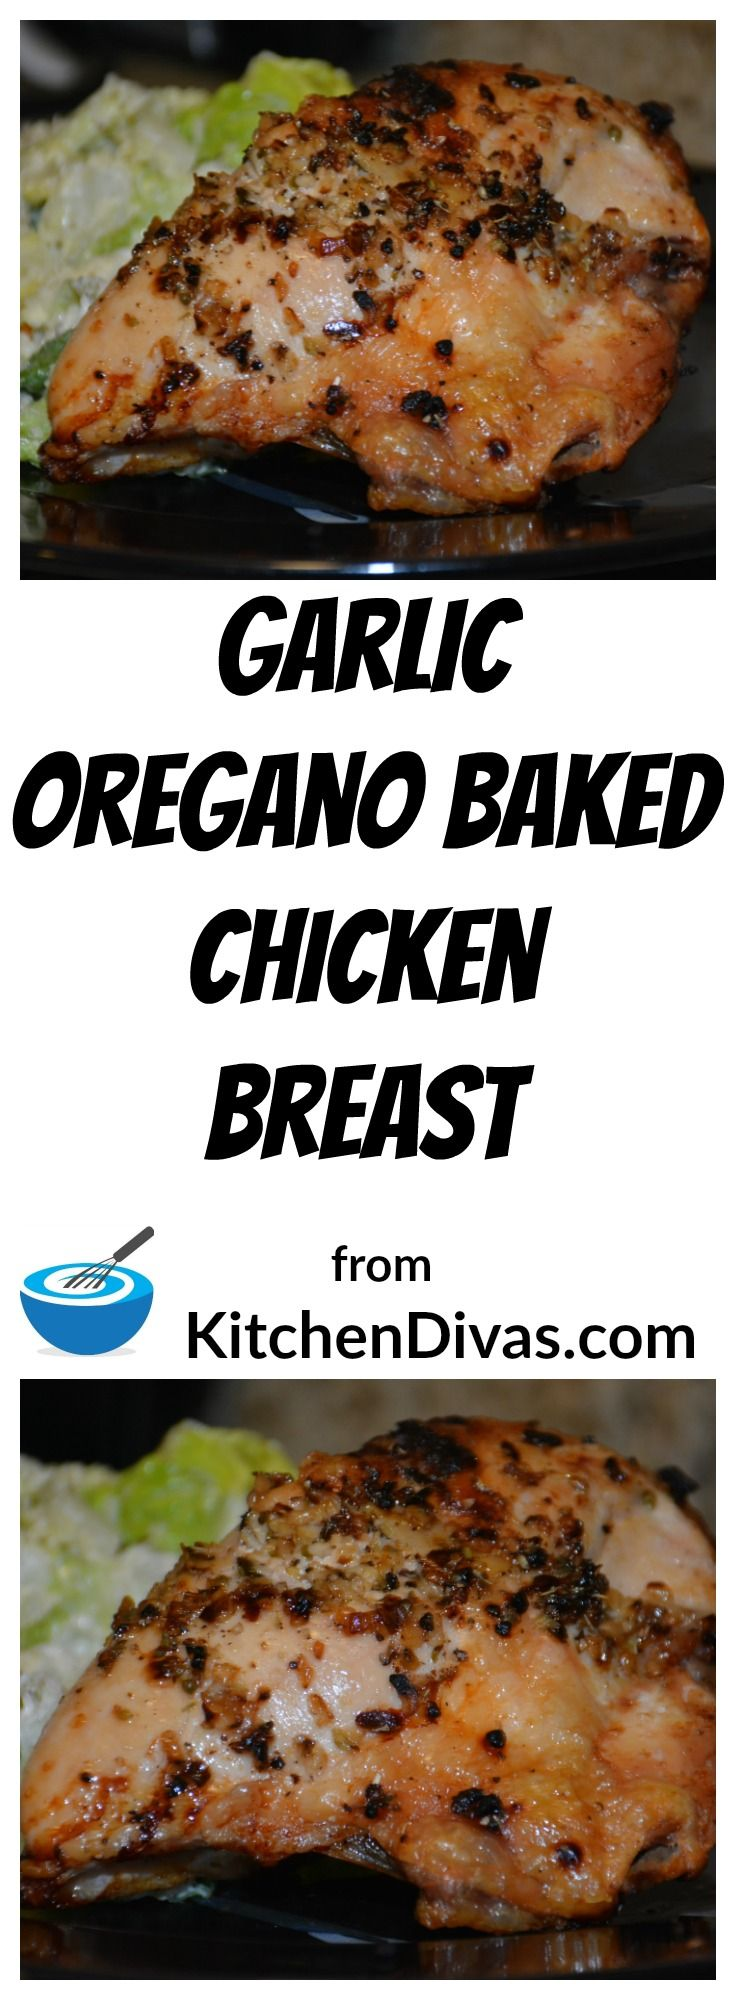 This Garlic Oregano Baked Chicken Breast tastes great and is so easy to make.  With or without the skin, the end result is perfection!  If oregano is not one of your favorite spices, or you don't have any handy,  you can substitute sage, thyme, or basil instead.  Delicious.  I always seem to serve this with salad but it is chicken, and you know you can serve it with anything!  #recipe #recipes #food #chicken #chickenbreast #foodideas